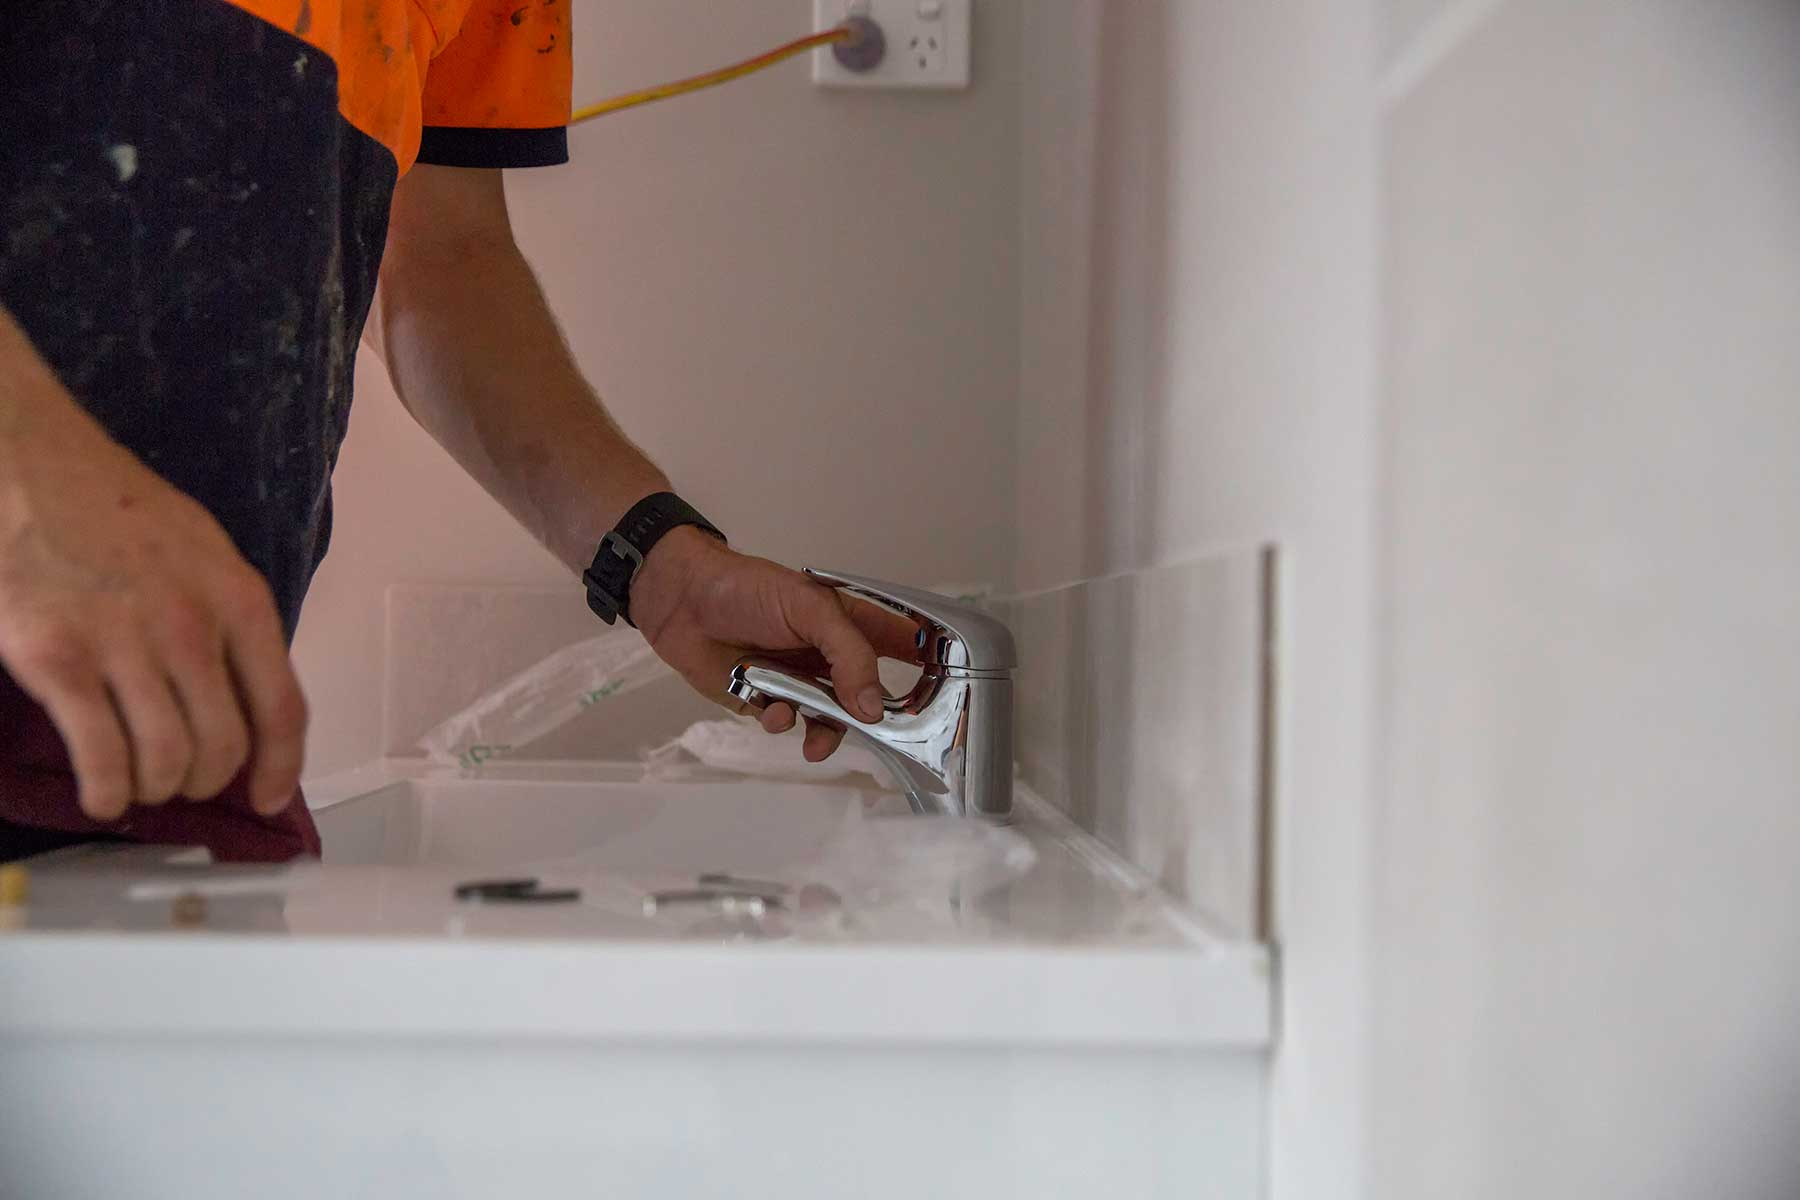 Neave Plumbing - Albury Wodonga Plumbers, Excavation, Maintenance, Domestic and Commercial Plumbers